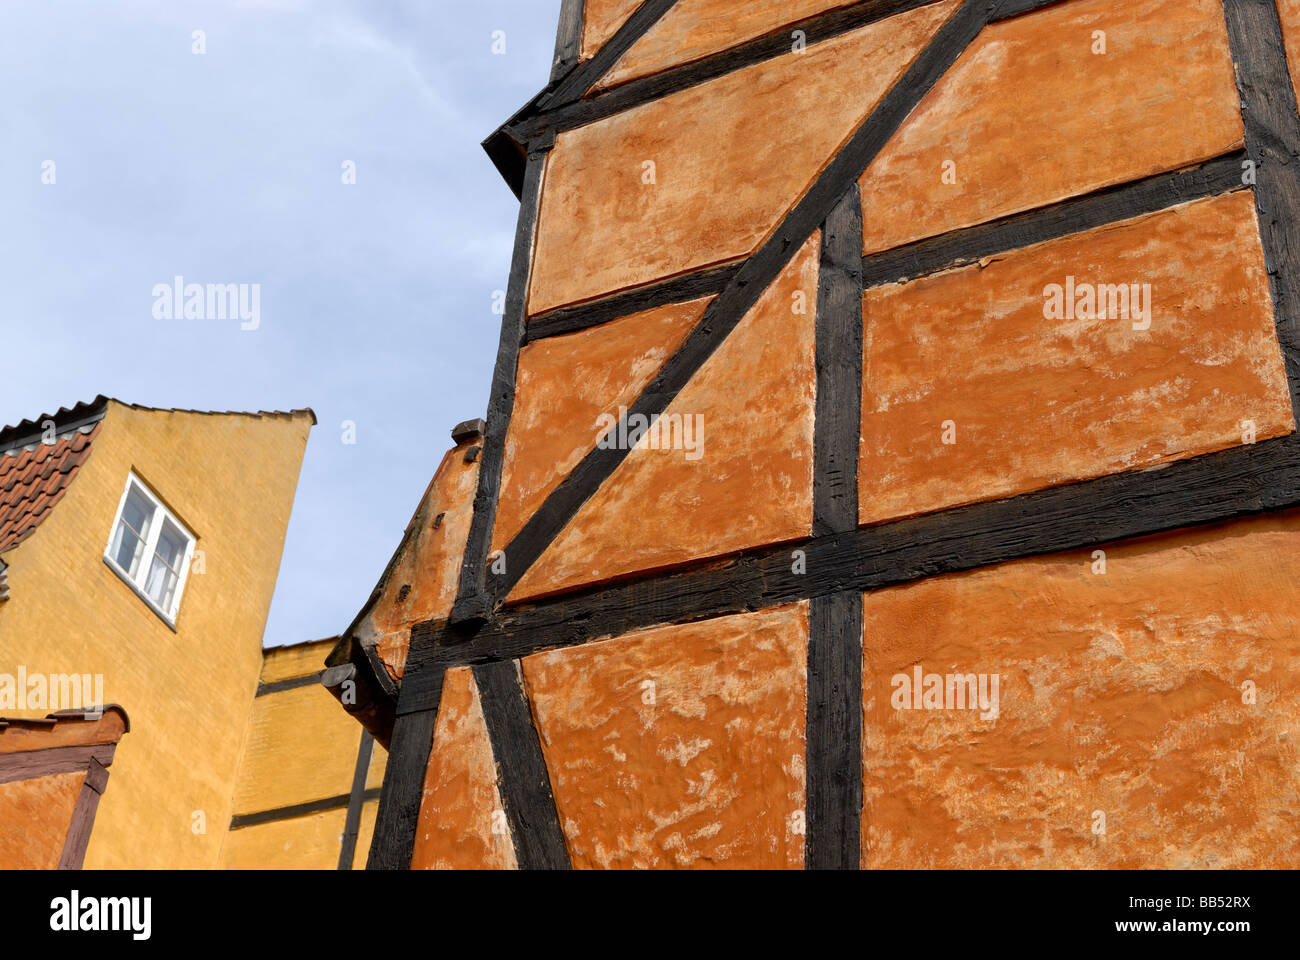 HALF-TIMBERED BUILDINGS - Stock Image